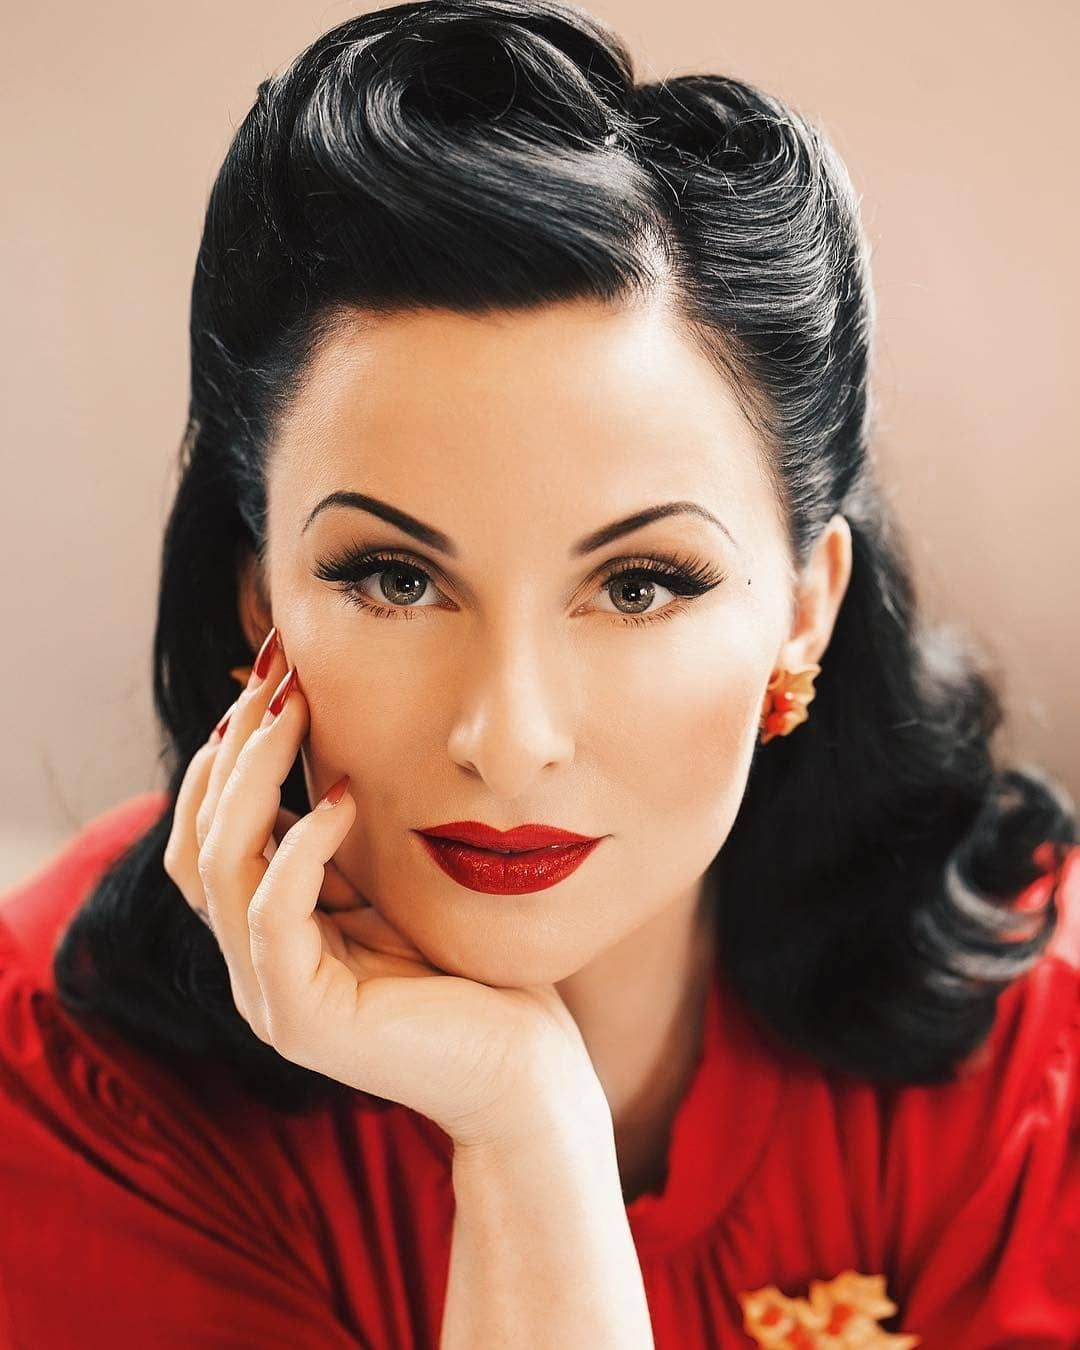 Glamazon Girls On Instagram Ava Elderwood Life Is Too Short To Not Go Where Your Heart Rockabilly Hair Retro Hairstyles Vintage Hairstyles For Long Hair